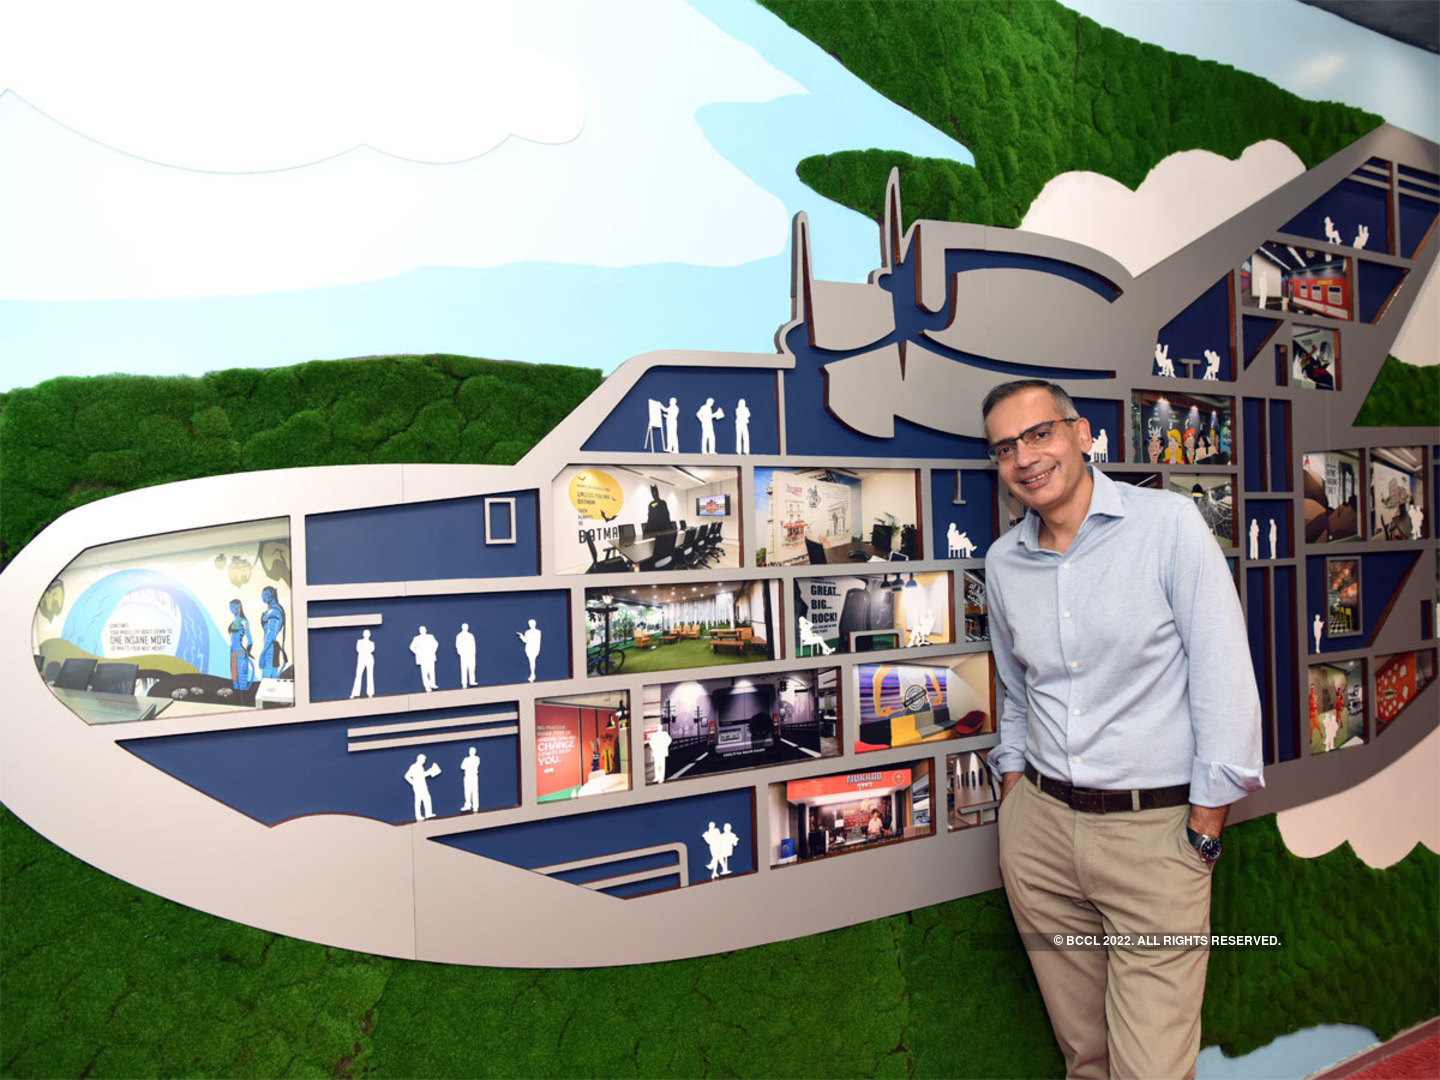 Hedging risks: In a world without travel, MakeMyTrip is diversifying